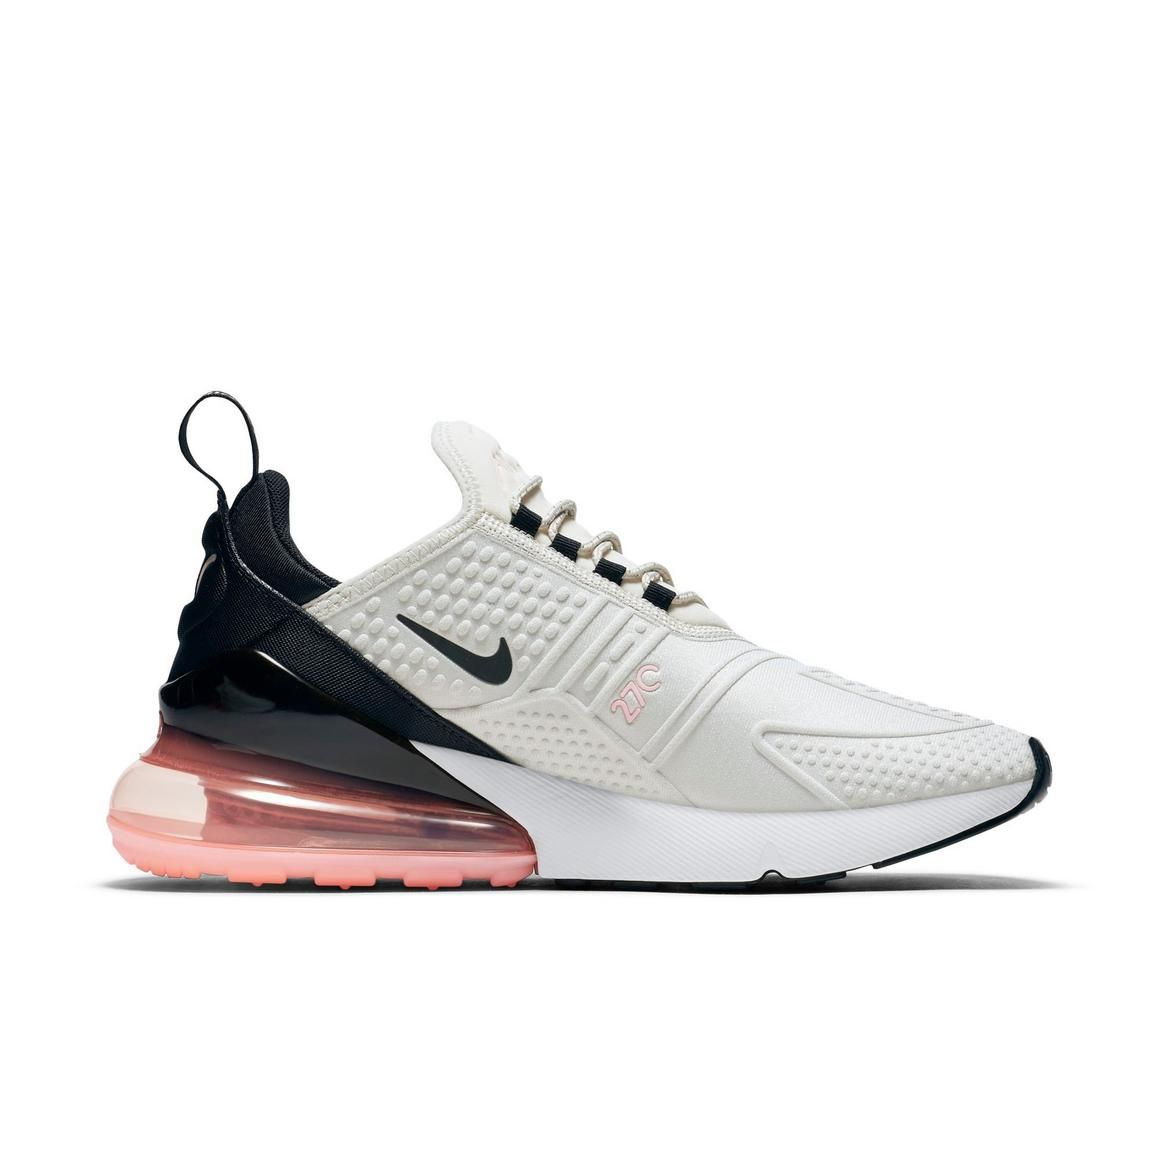 Nike Air Max 270 Trainers In Pink | Pink nike shoes, Cool